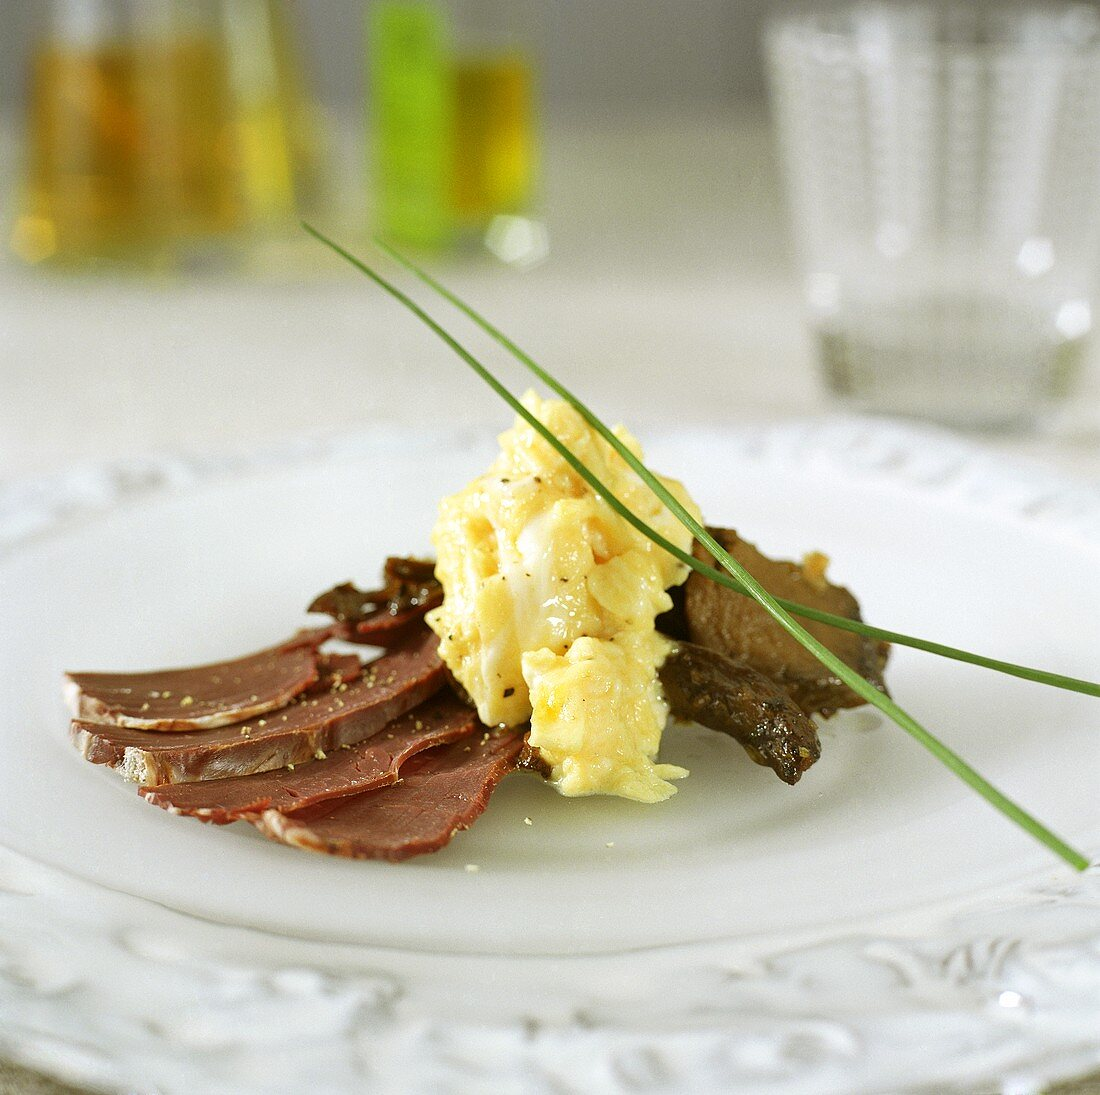 Smoked elk heart with scrambled egg